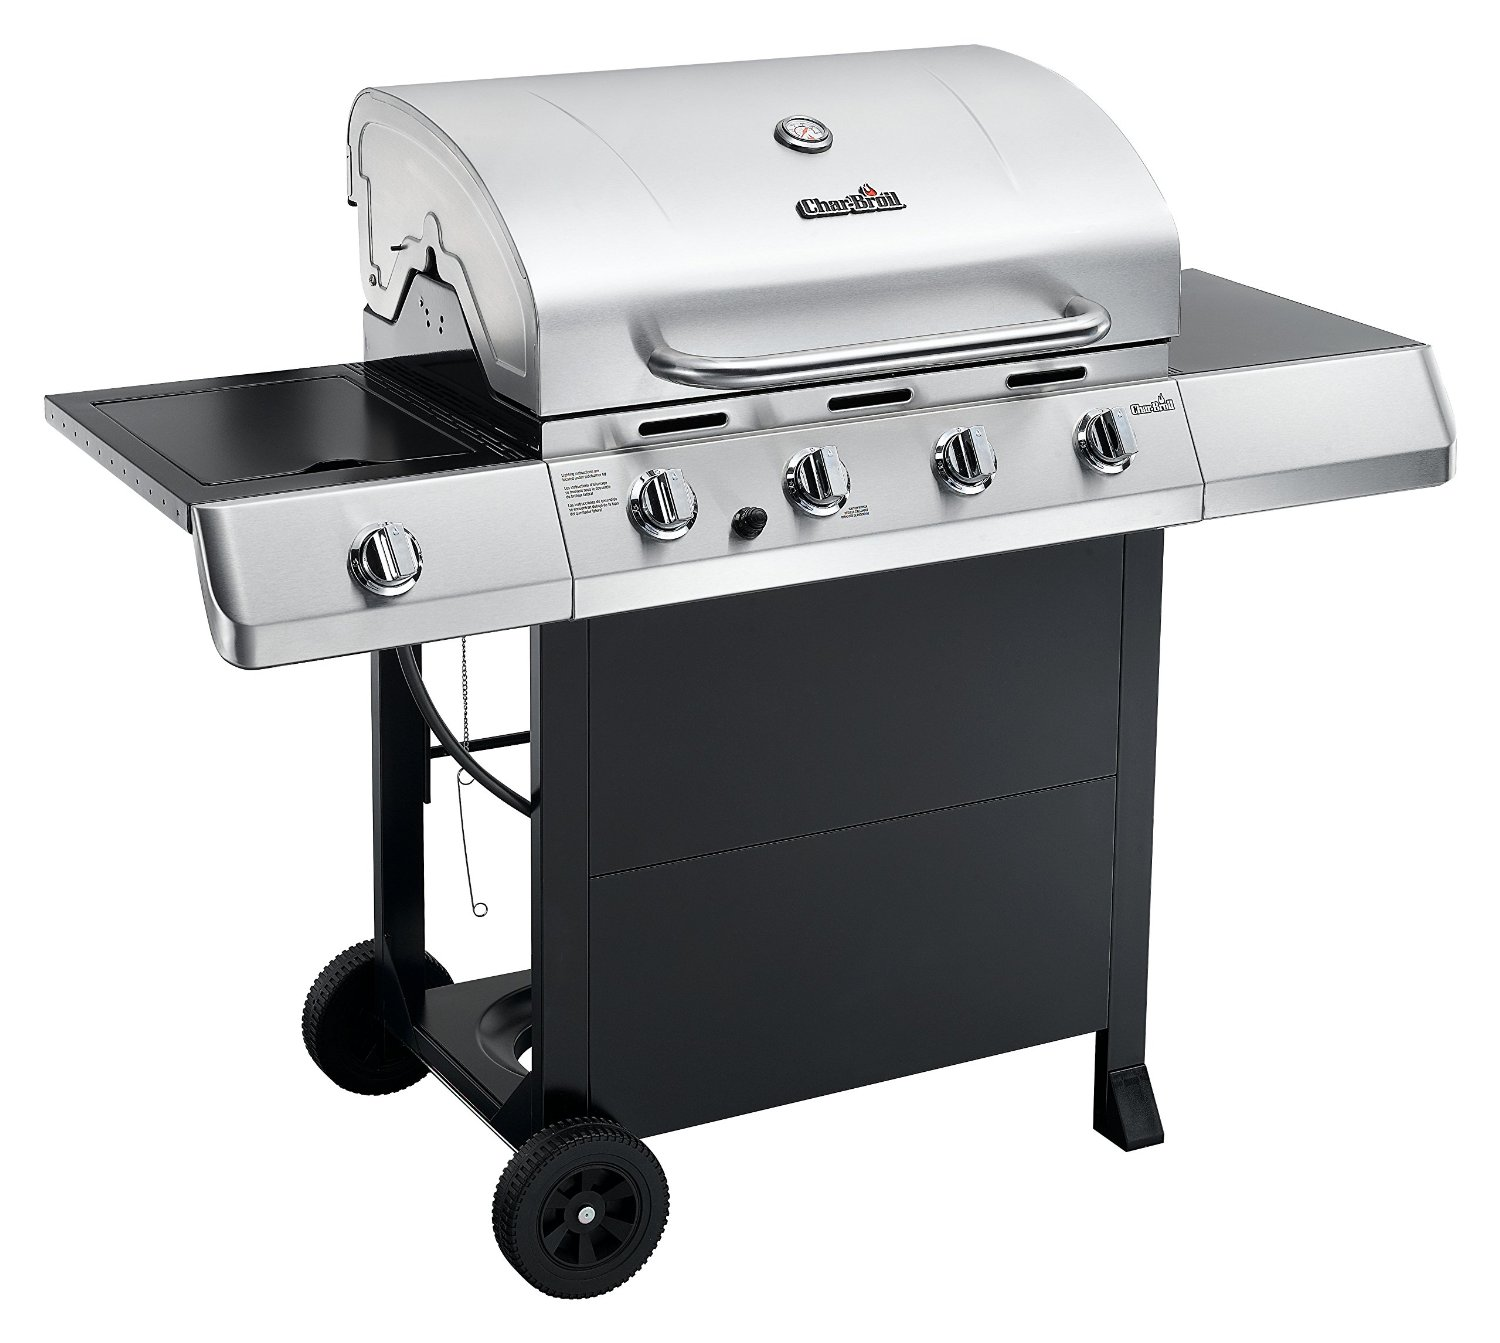 Char Broil Classic 4 Burner Grill, Stylish Design